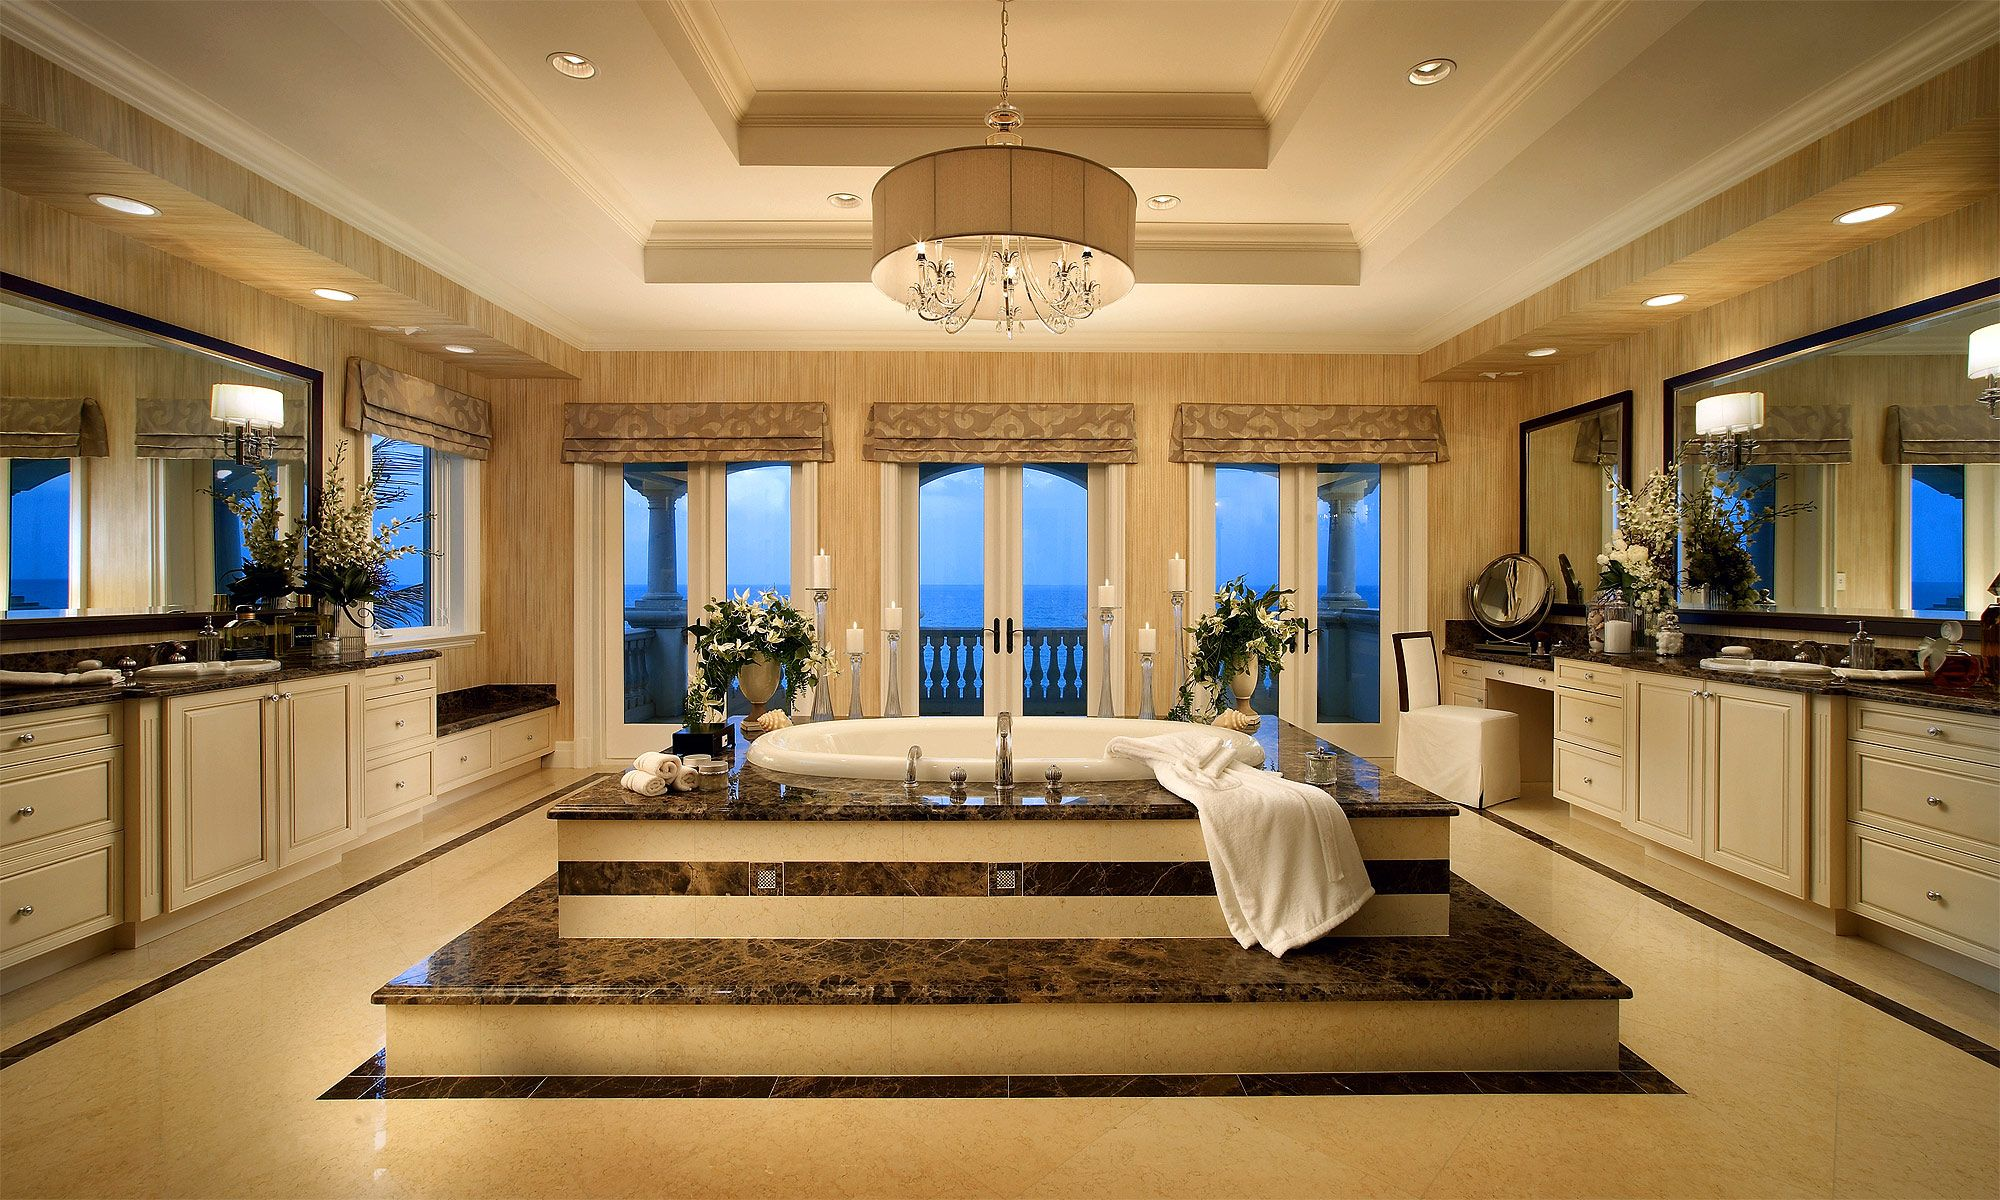 Bathroom Mediterranean Interior Design Style Unbelievably Chic In Floors Levels And Expensive Dark Marble